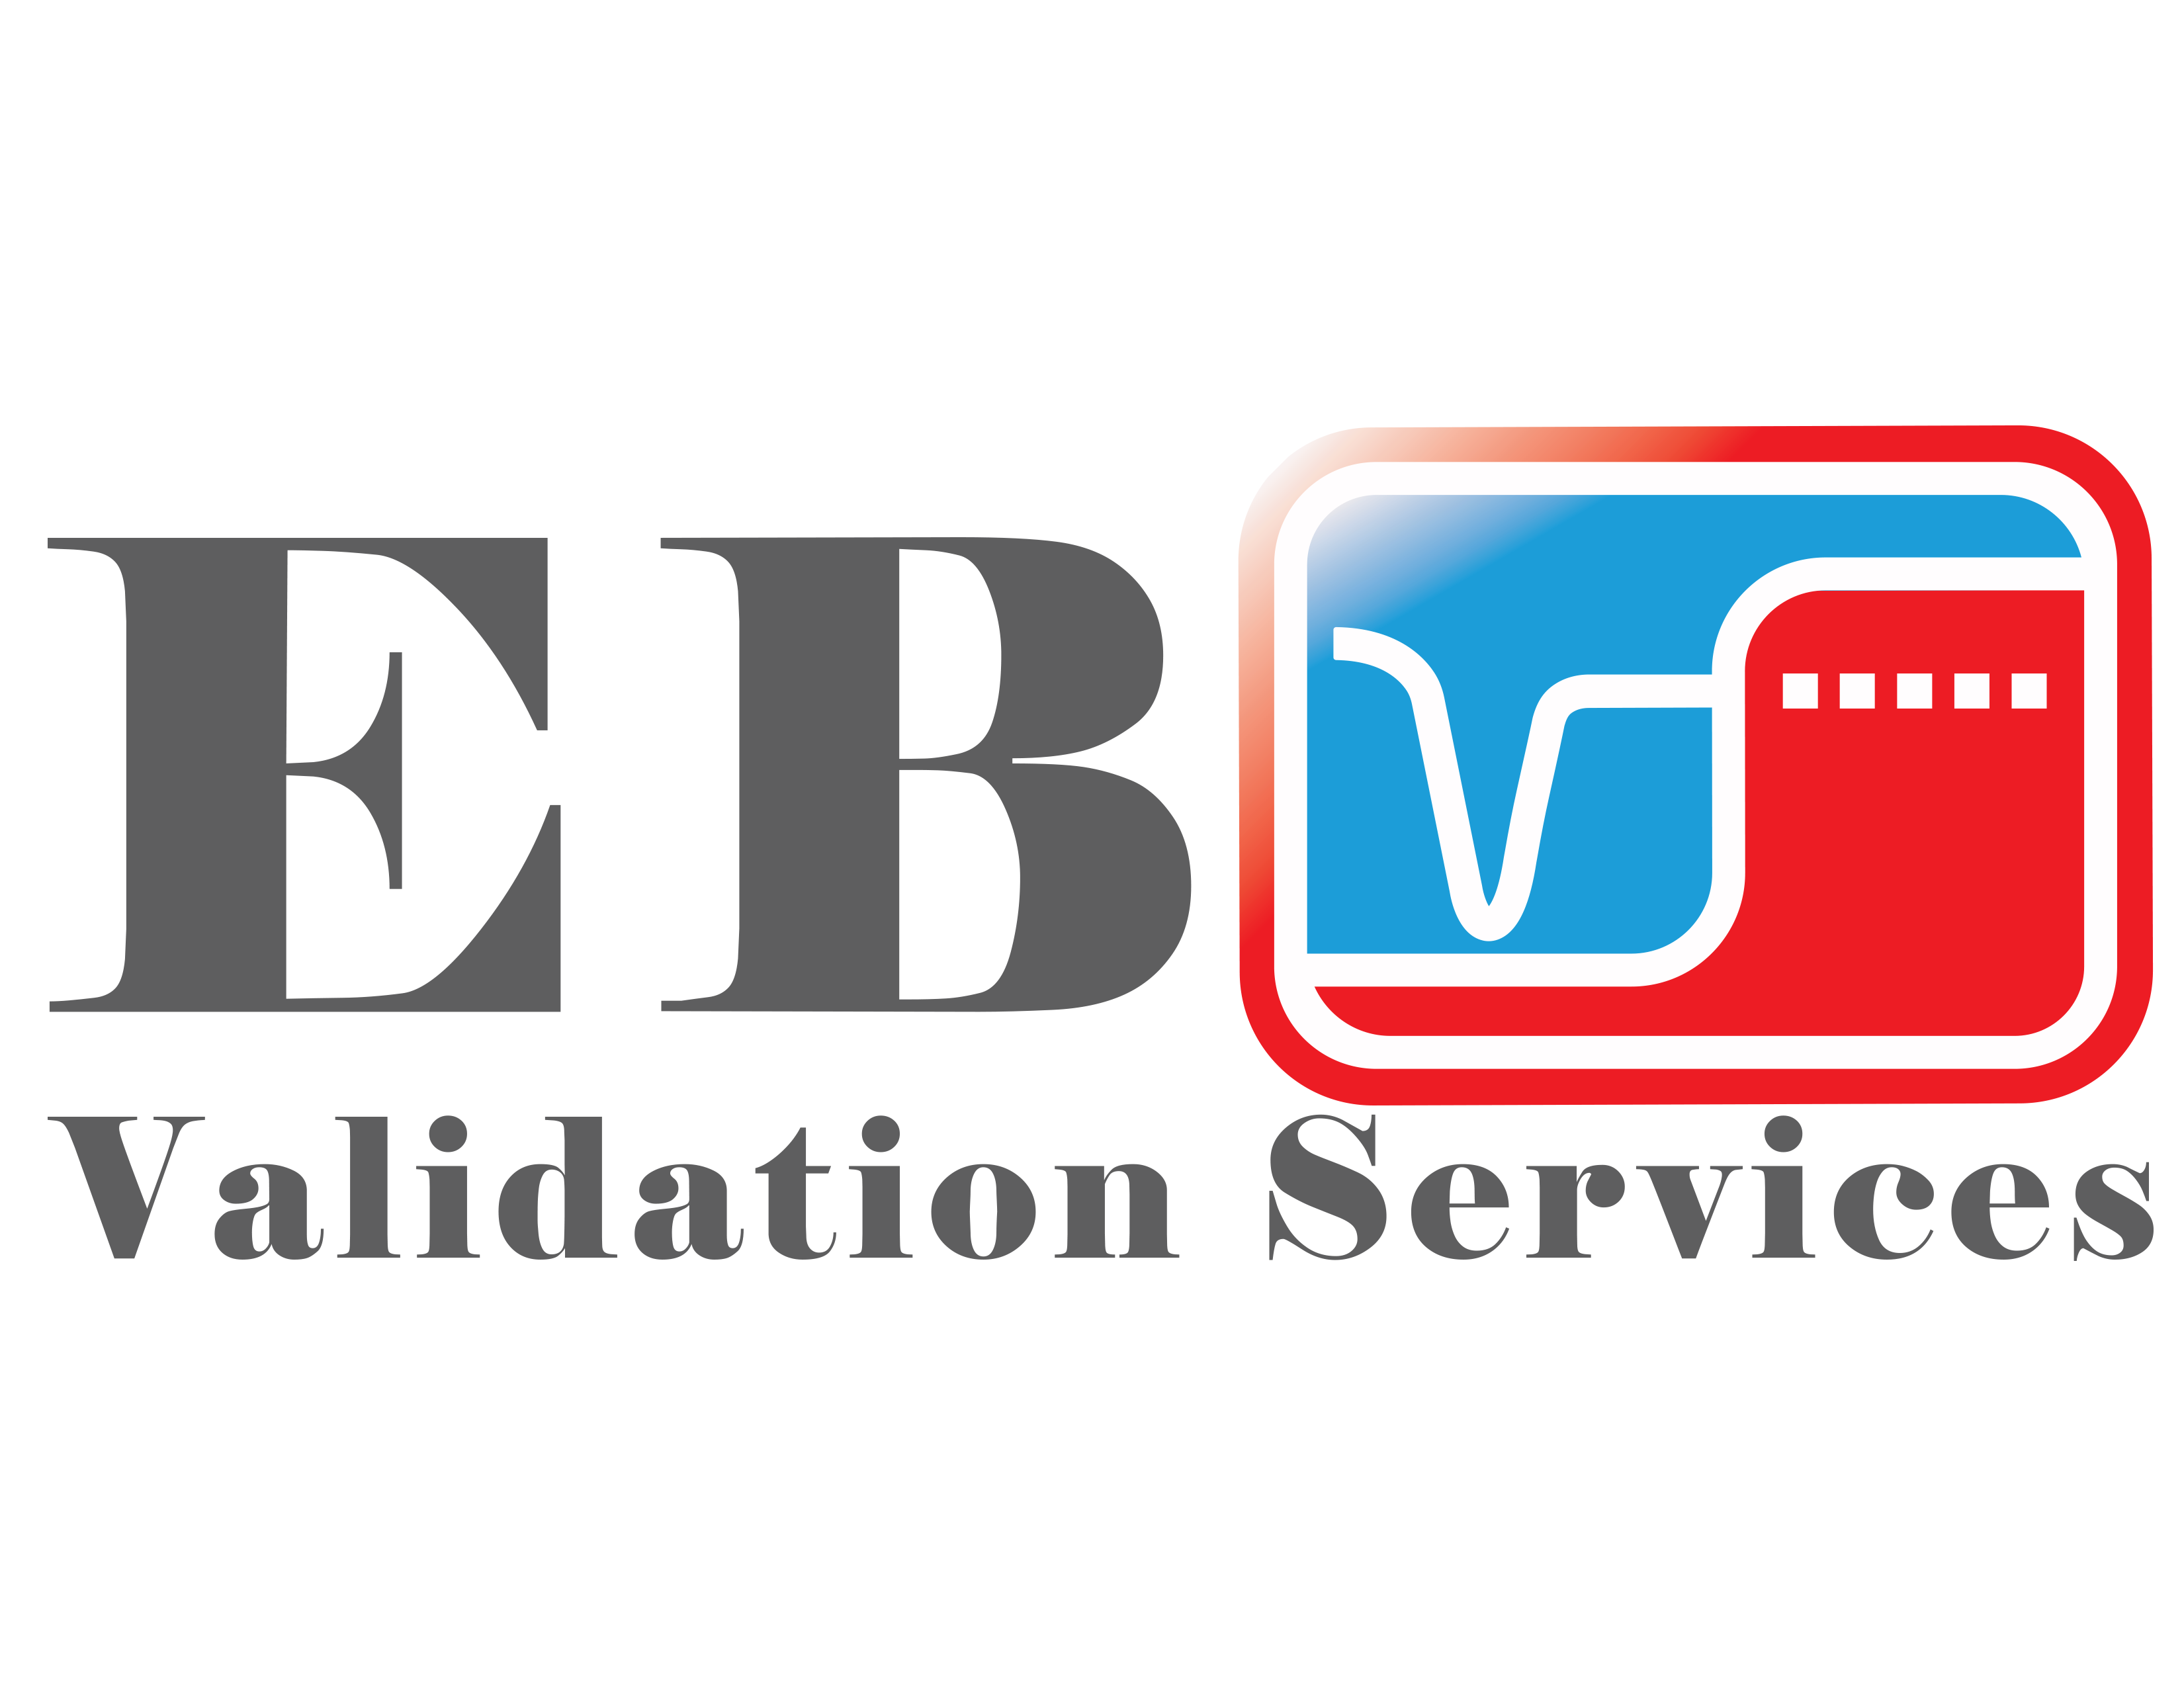 EB Validation logo